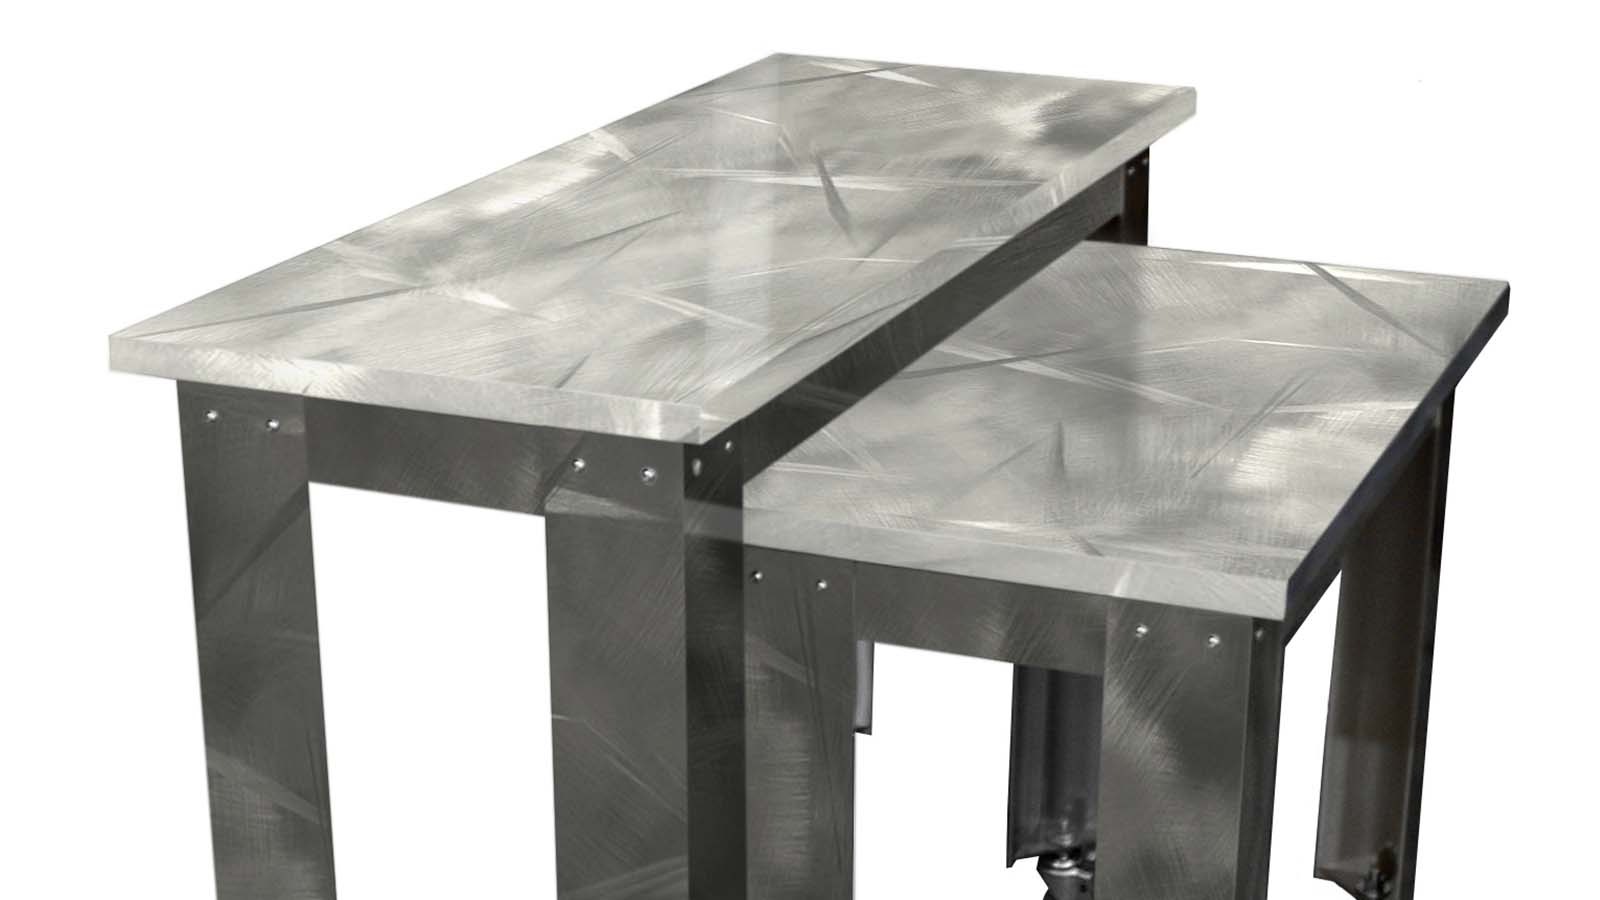 Moz Designer Metals, Fixtures, Table Tops, Signage